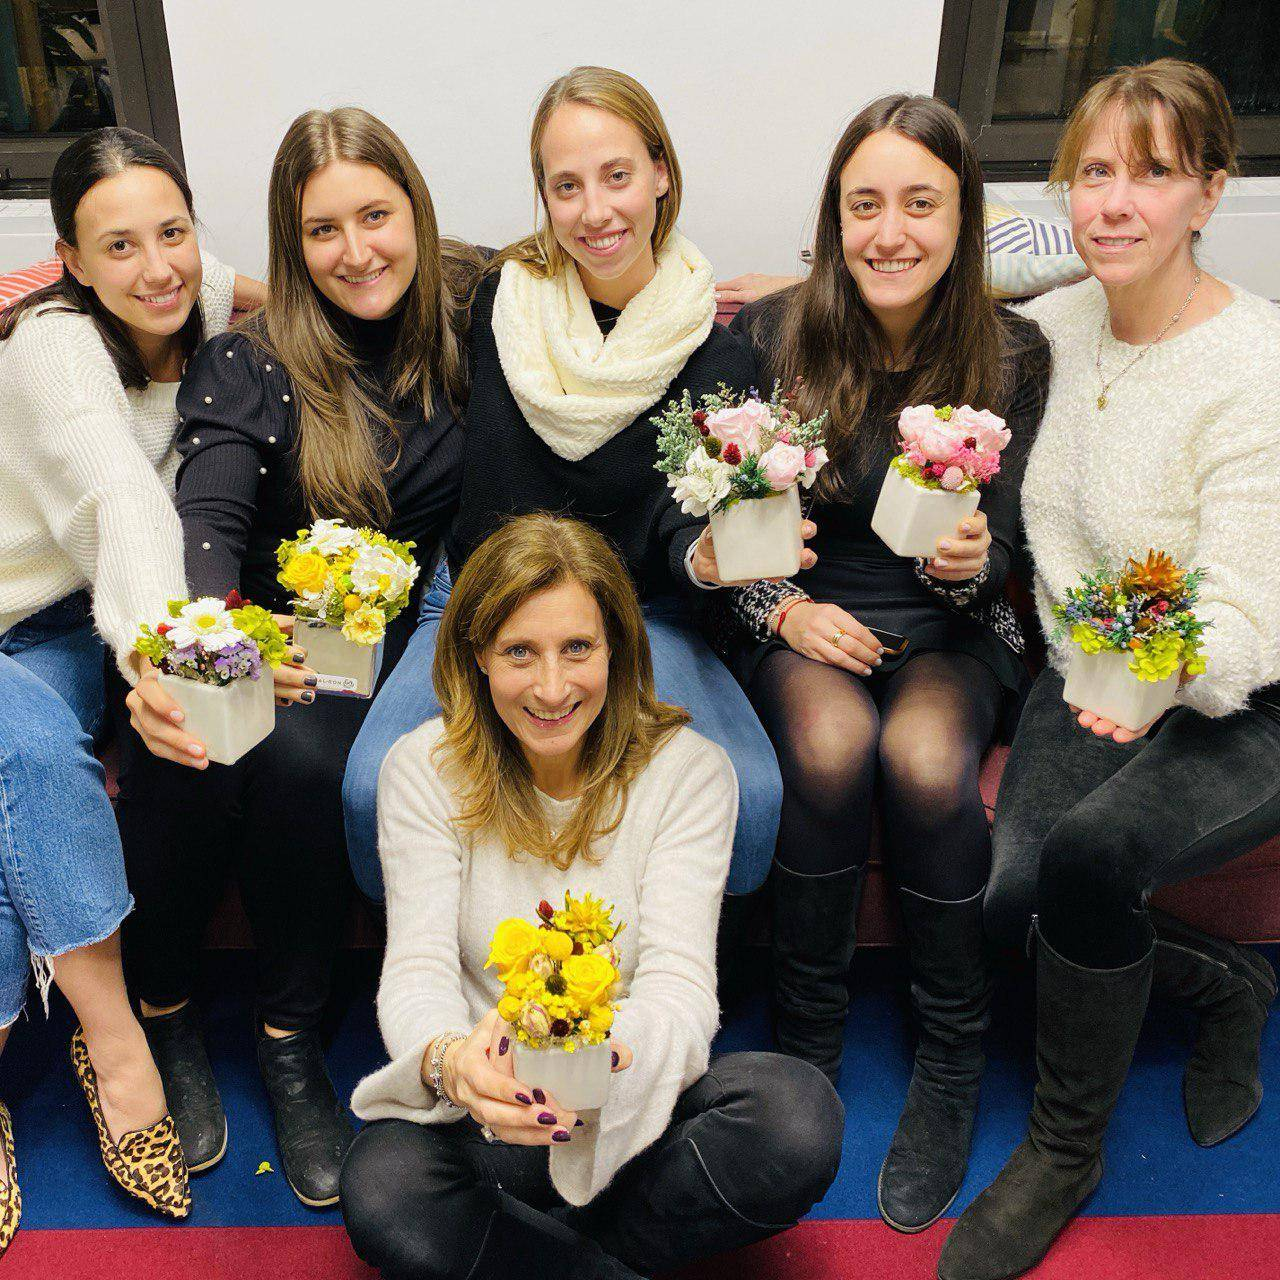 2021.2.19 PwC Virtual Flower Arranging Workshop